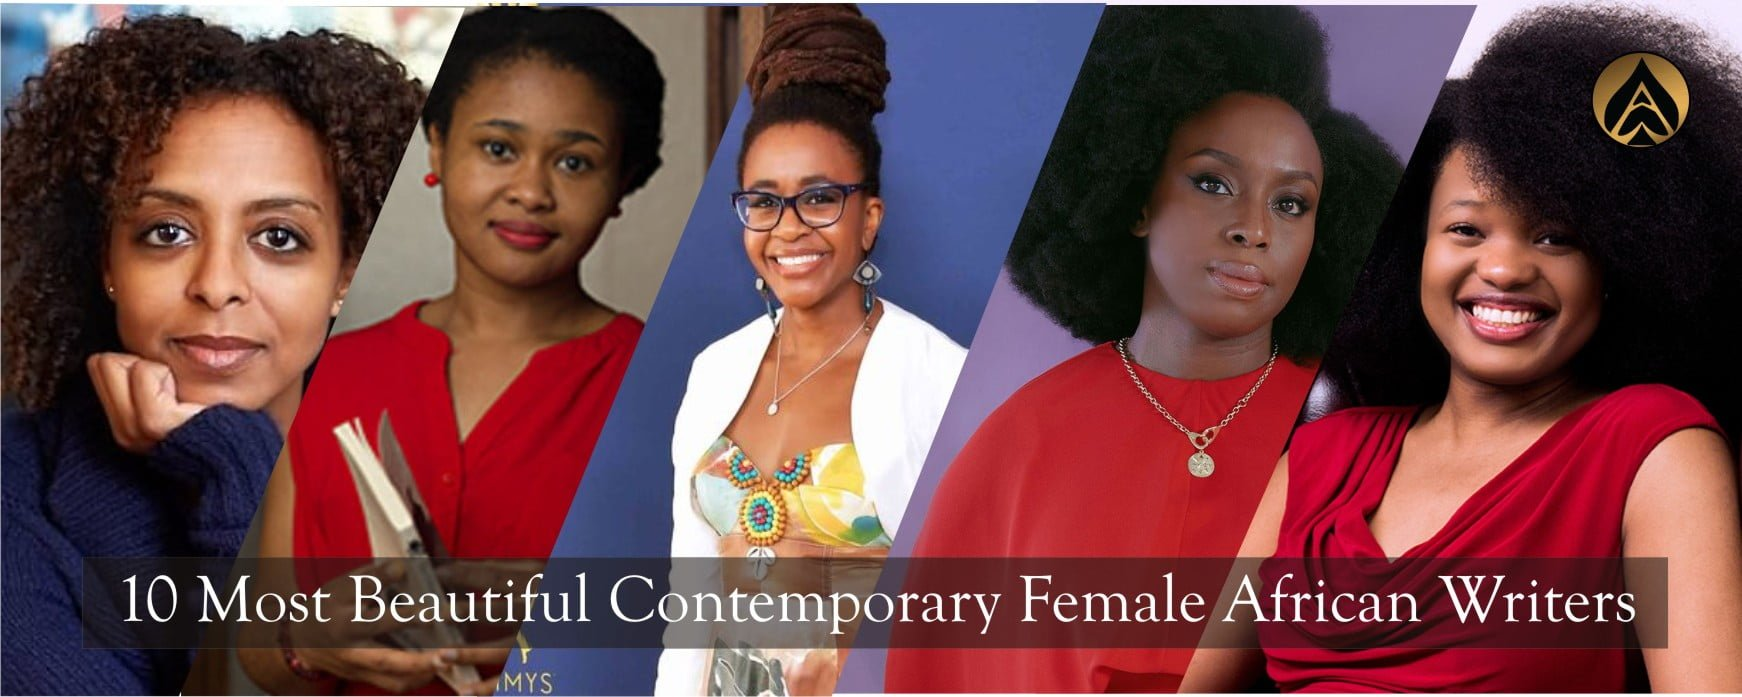 10 Most Beautiful Contemporary Female African Writers